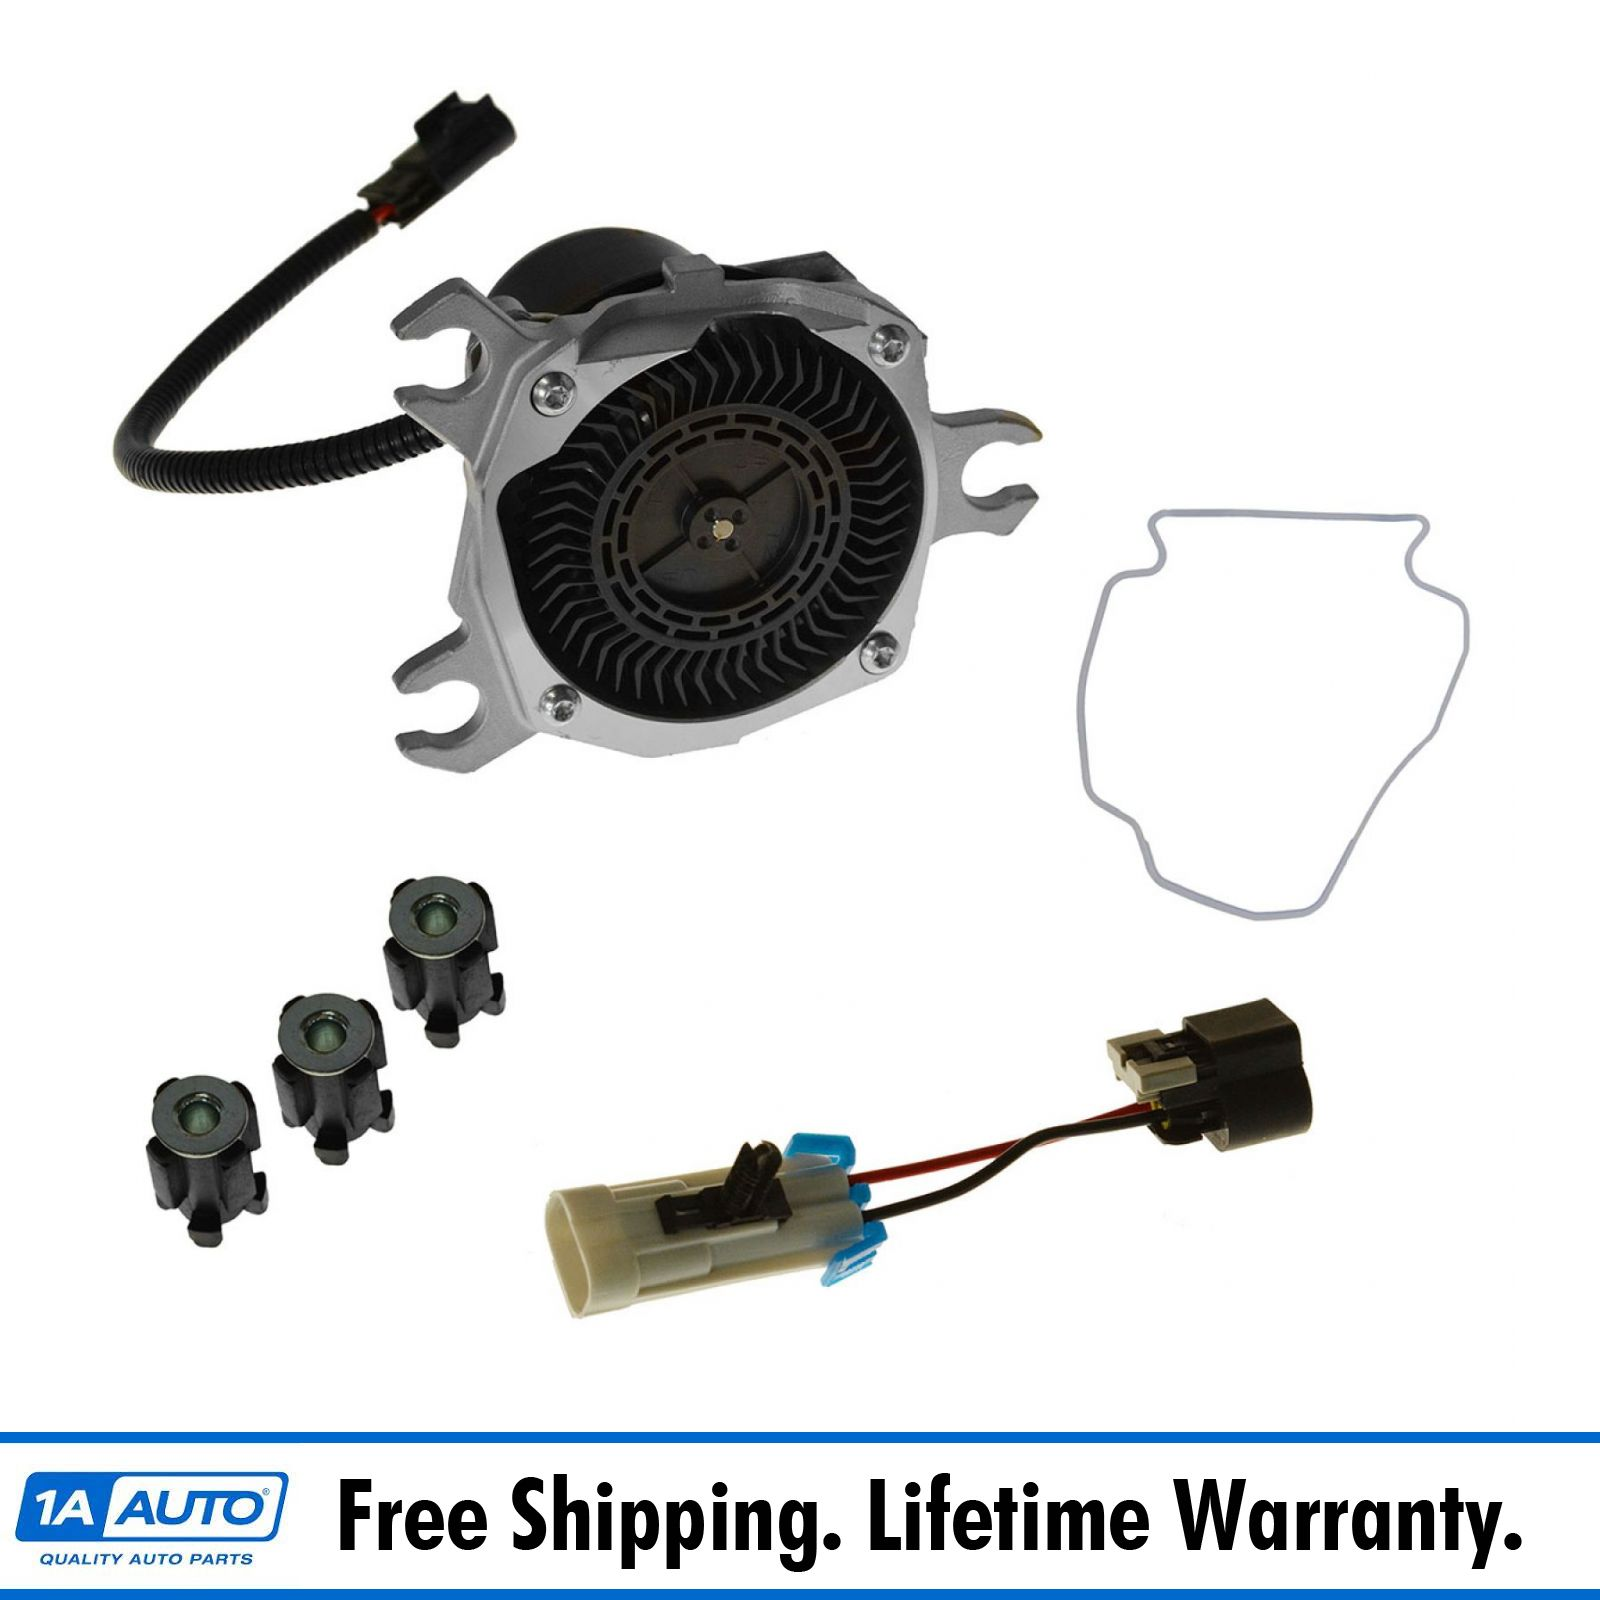 Smog for GMC Chevy ford Pickup Truck Dorman Electric Air Pump Motor A.I.R